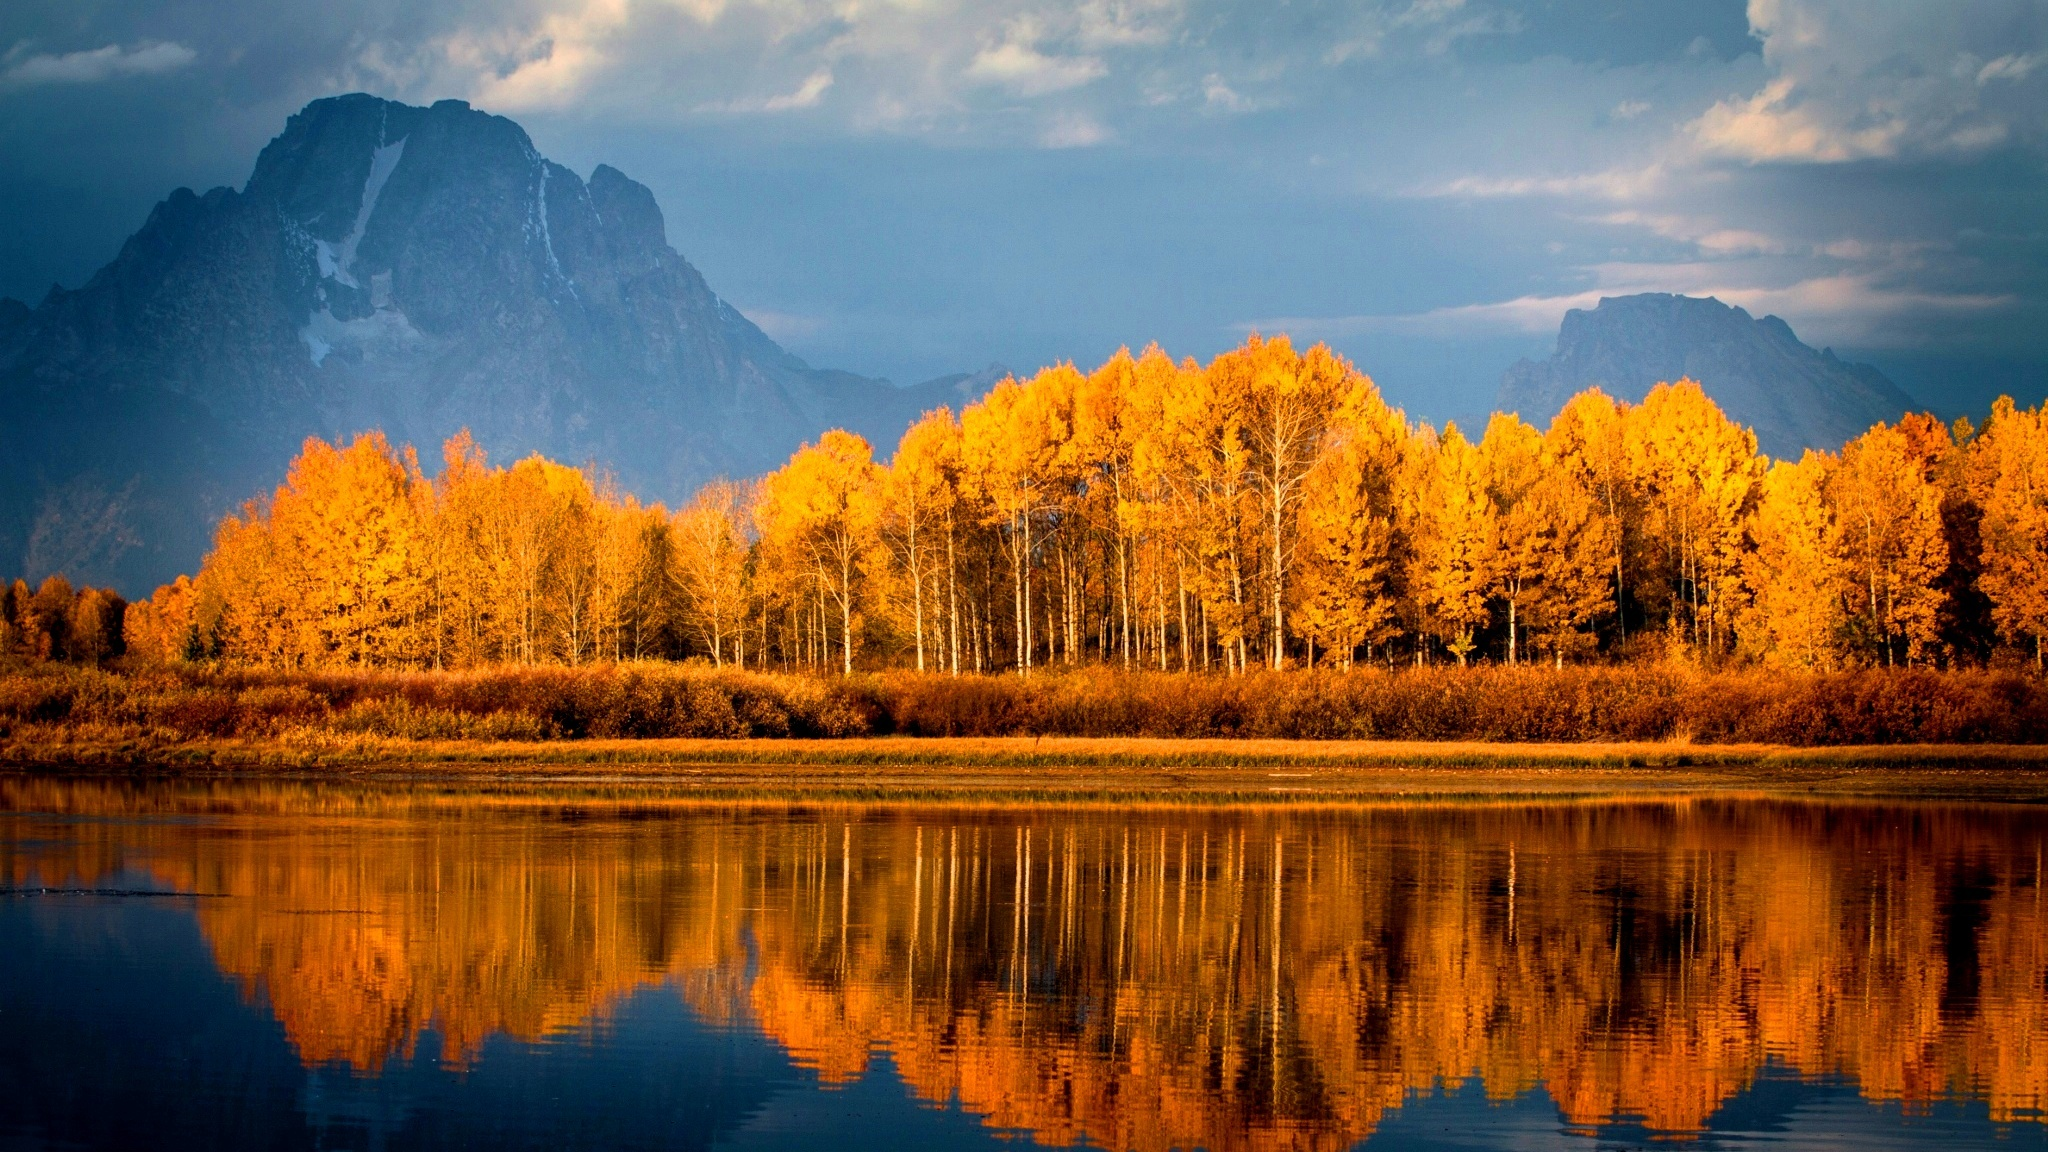 Fall Hd Wallpapers 1080p Widescreen Autumn Lake Trees Mountains Wallpapers 2048x1152 1082946